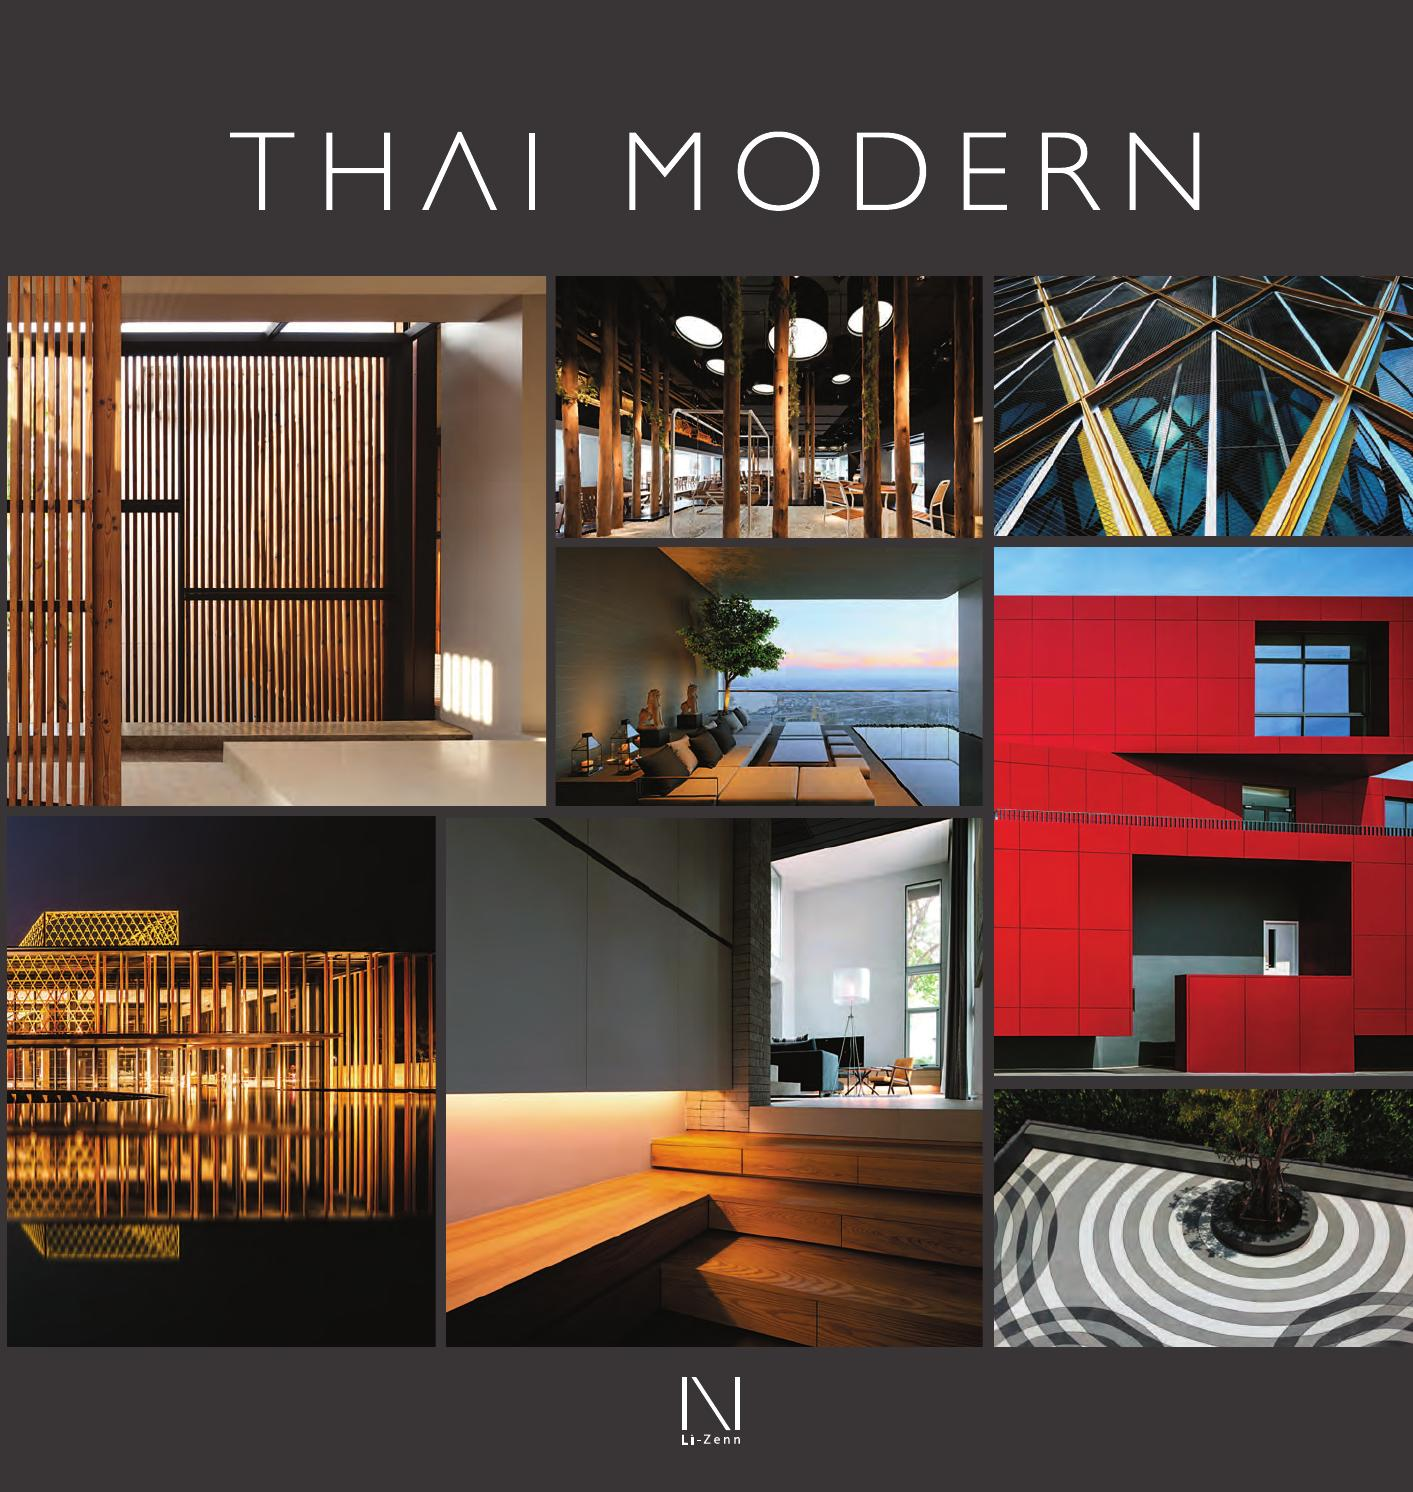 Modern Thai Home Inspiration: Thai Modern By Li-Zenn